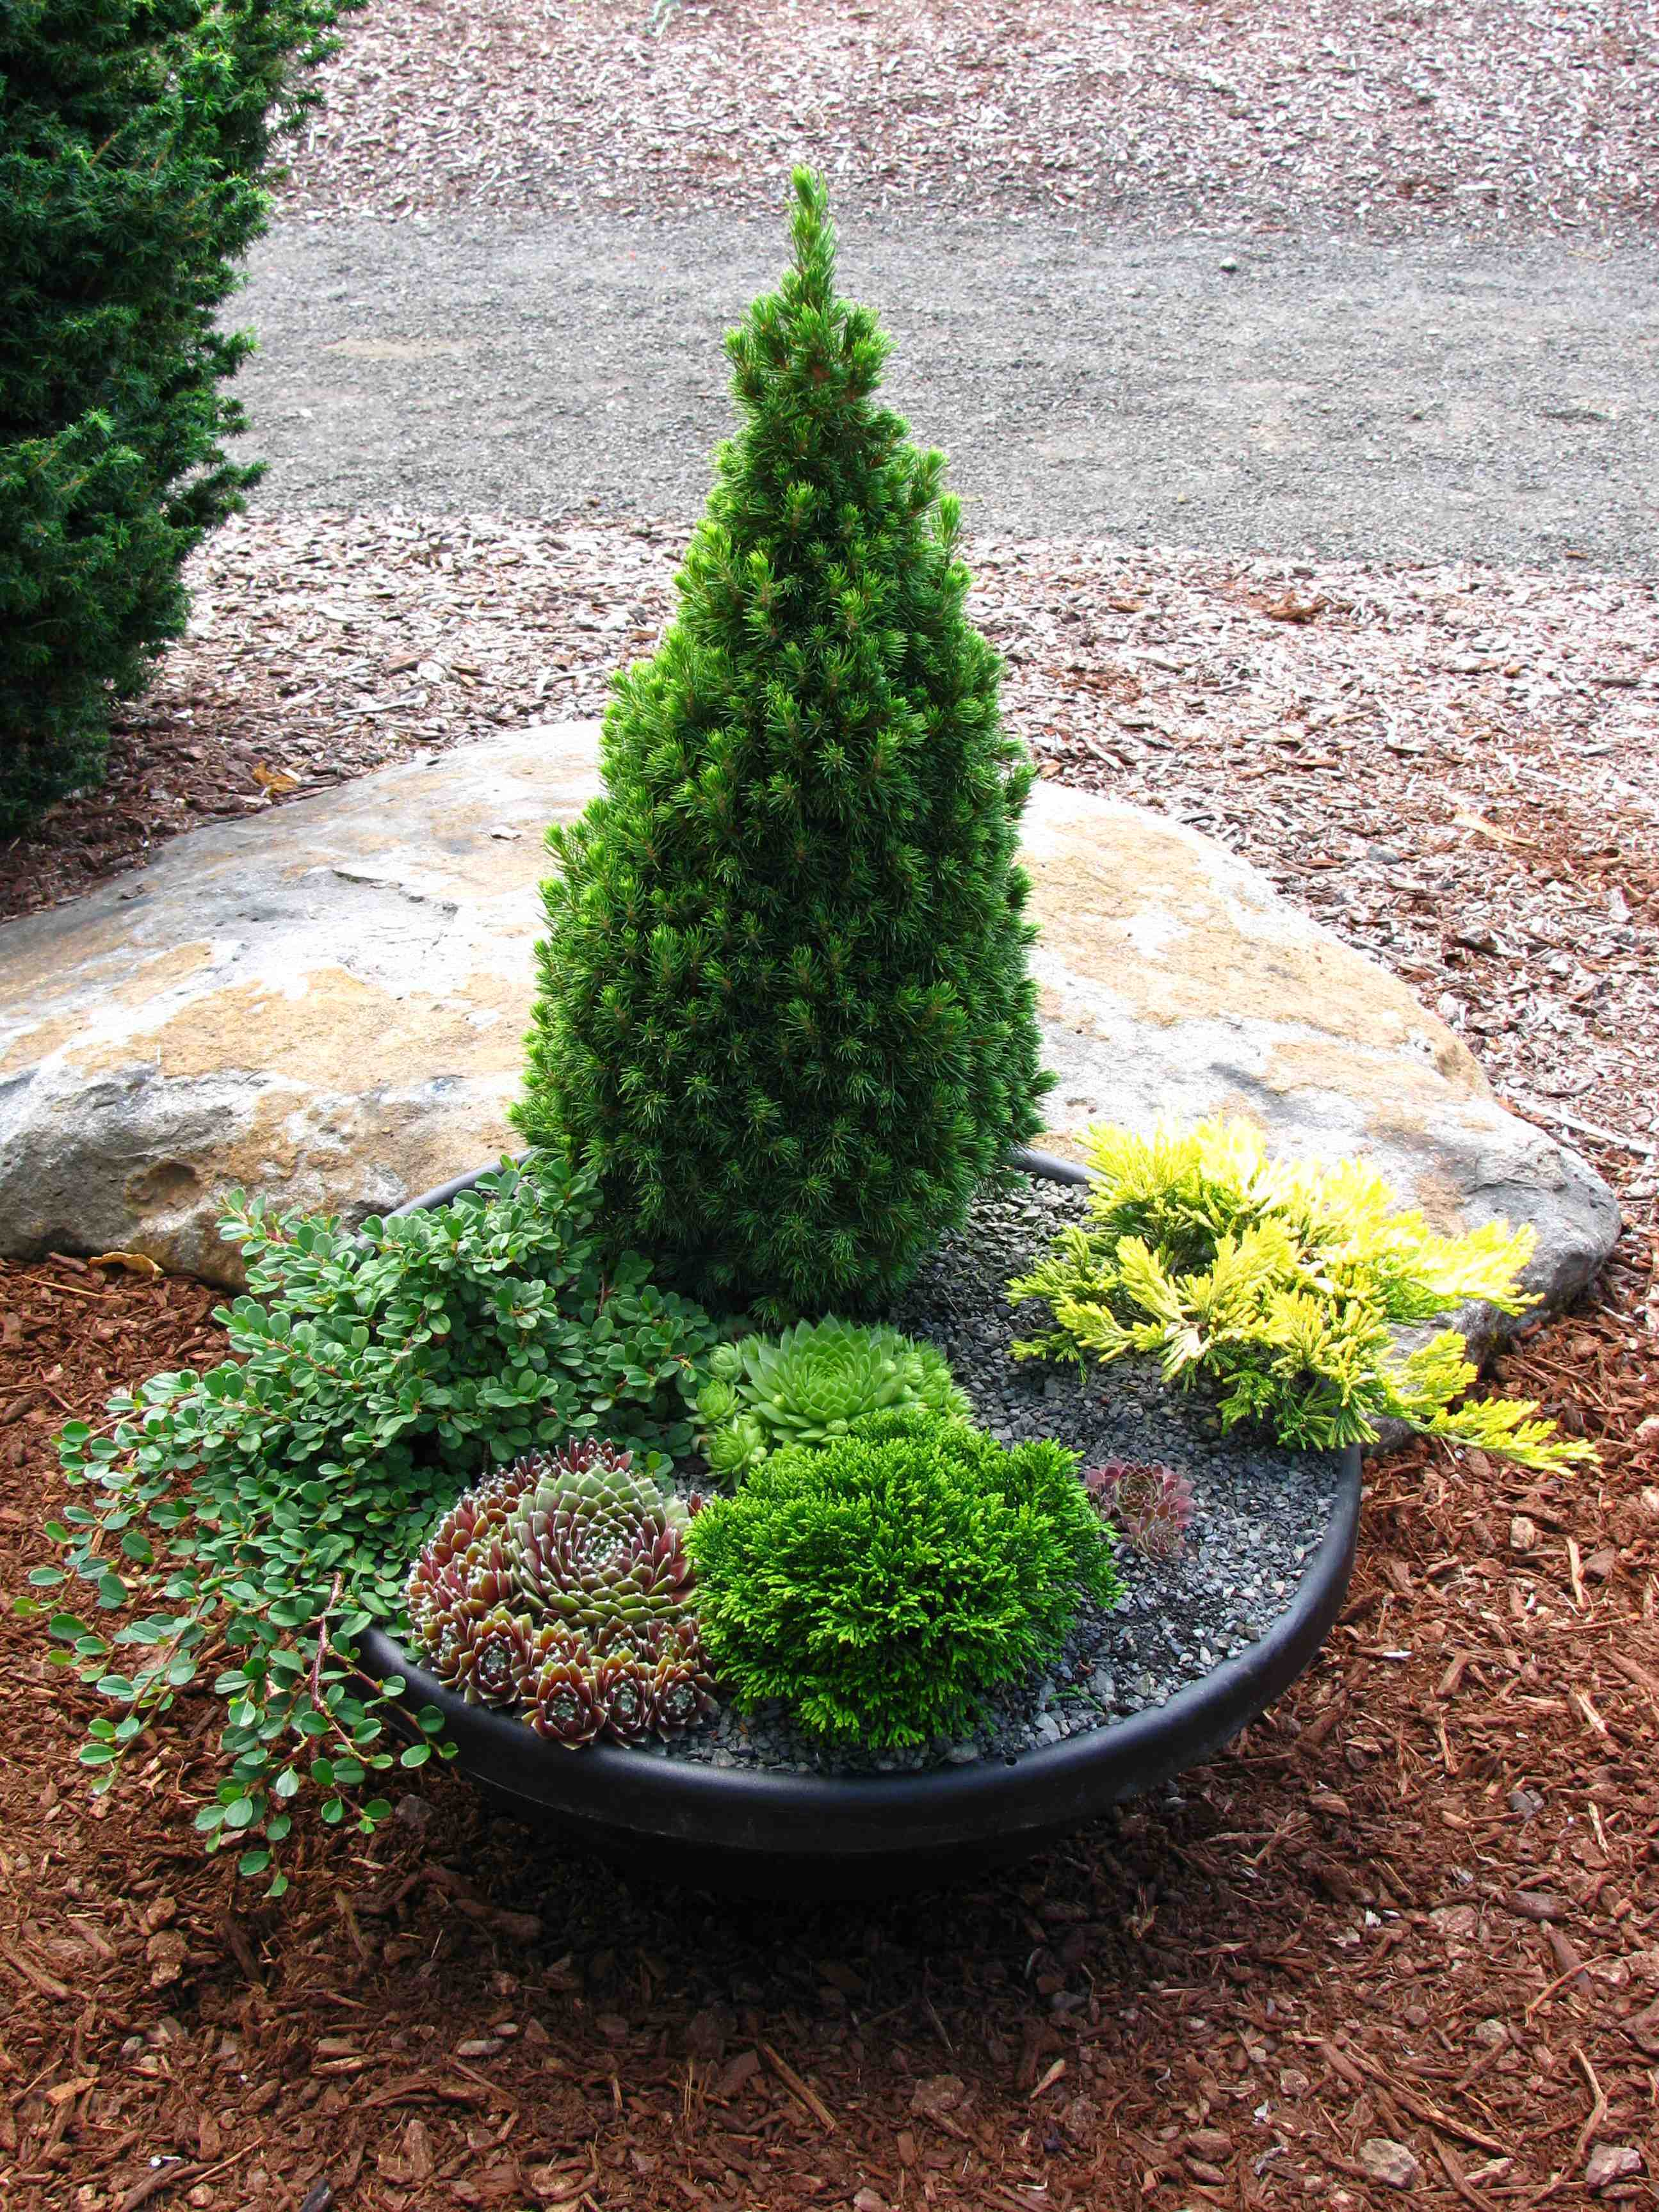 Spruce 'Jean's Dilly' (Picea glauca 'Jean's Dilly') in a container garden.